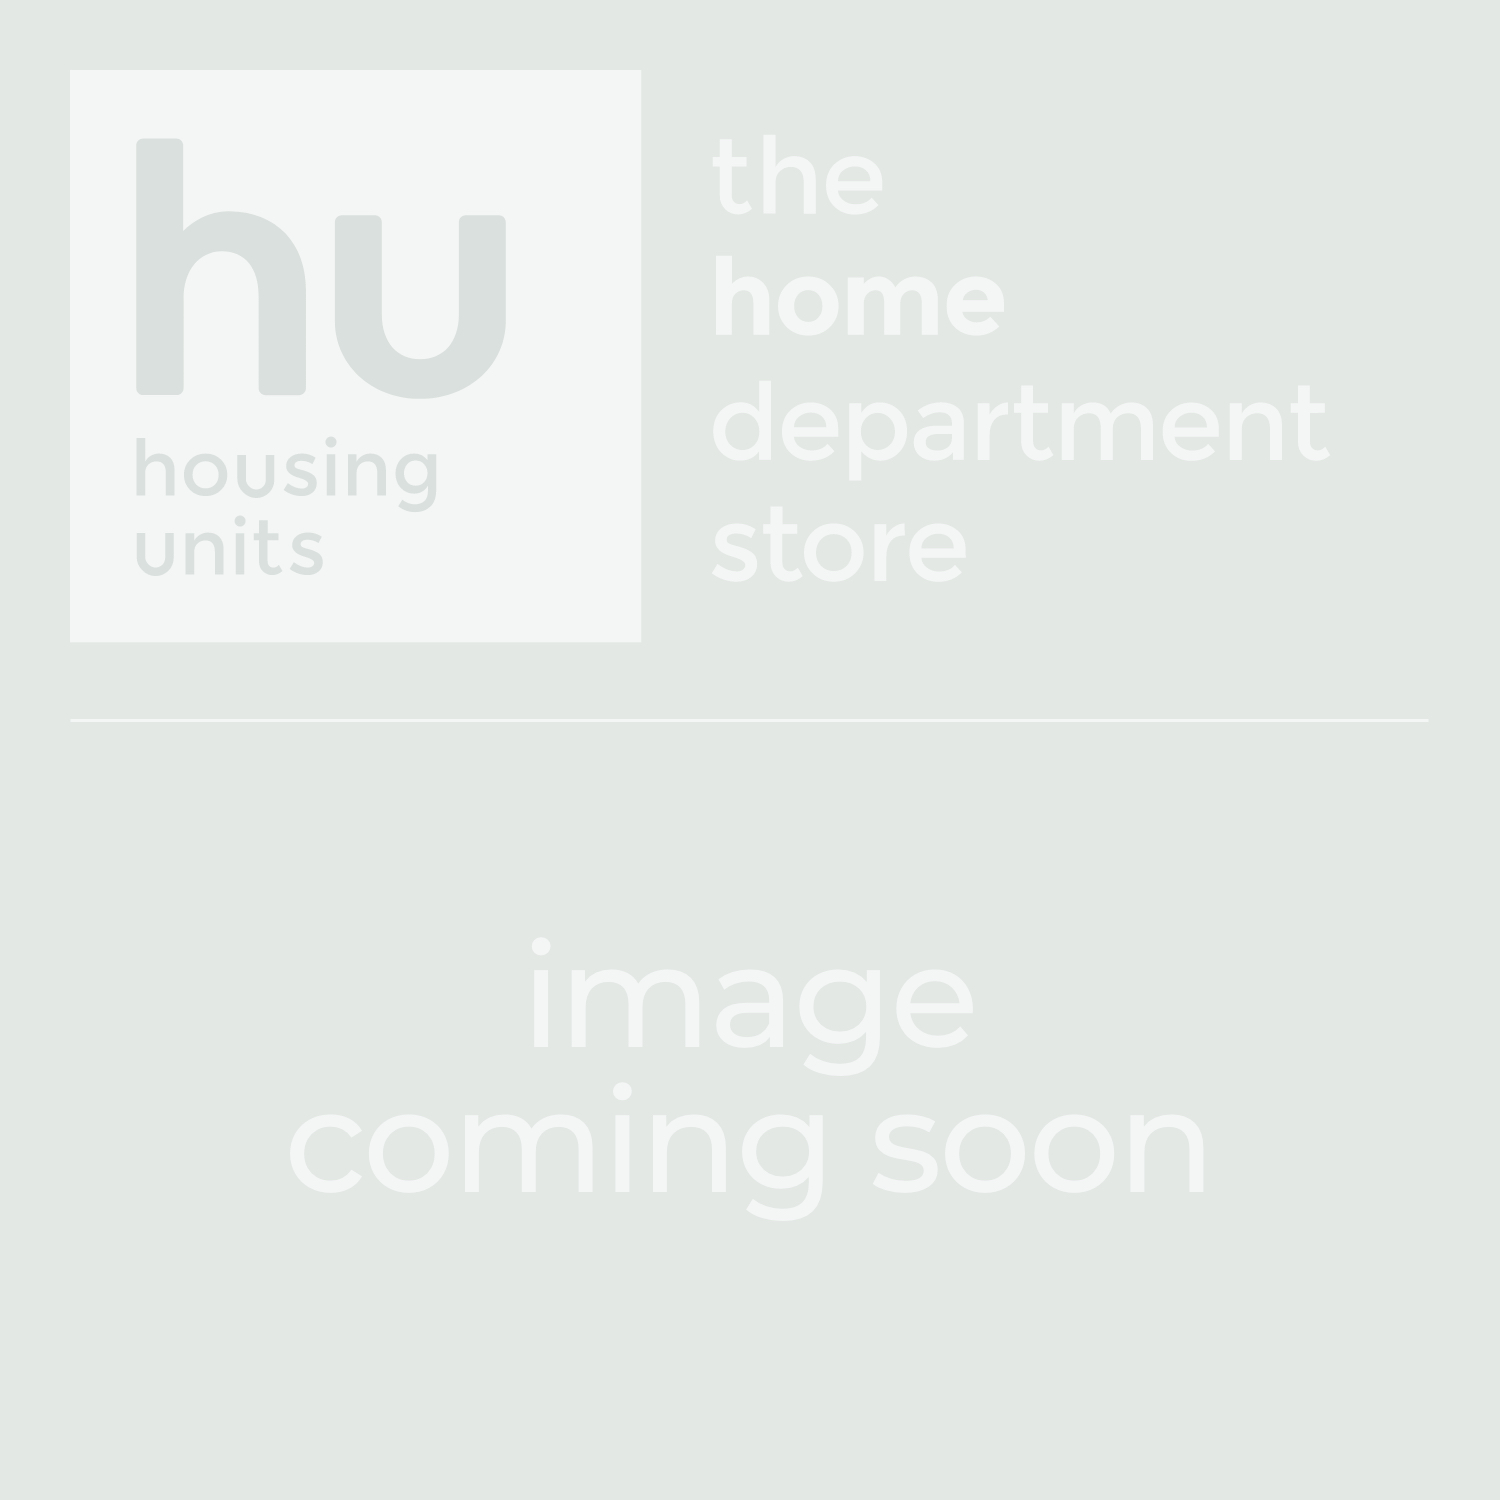 Celine Crystal & Gold 2 Light Wall Light | Housing Units